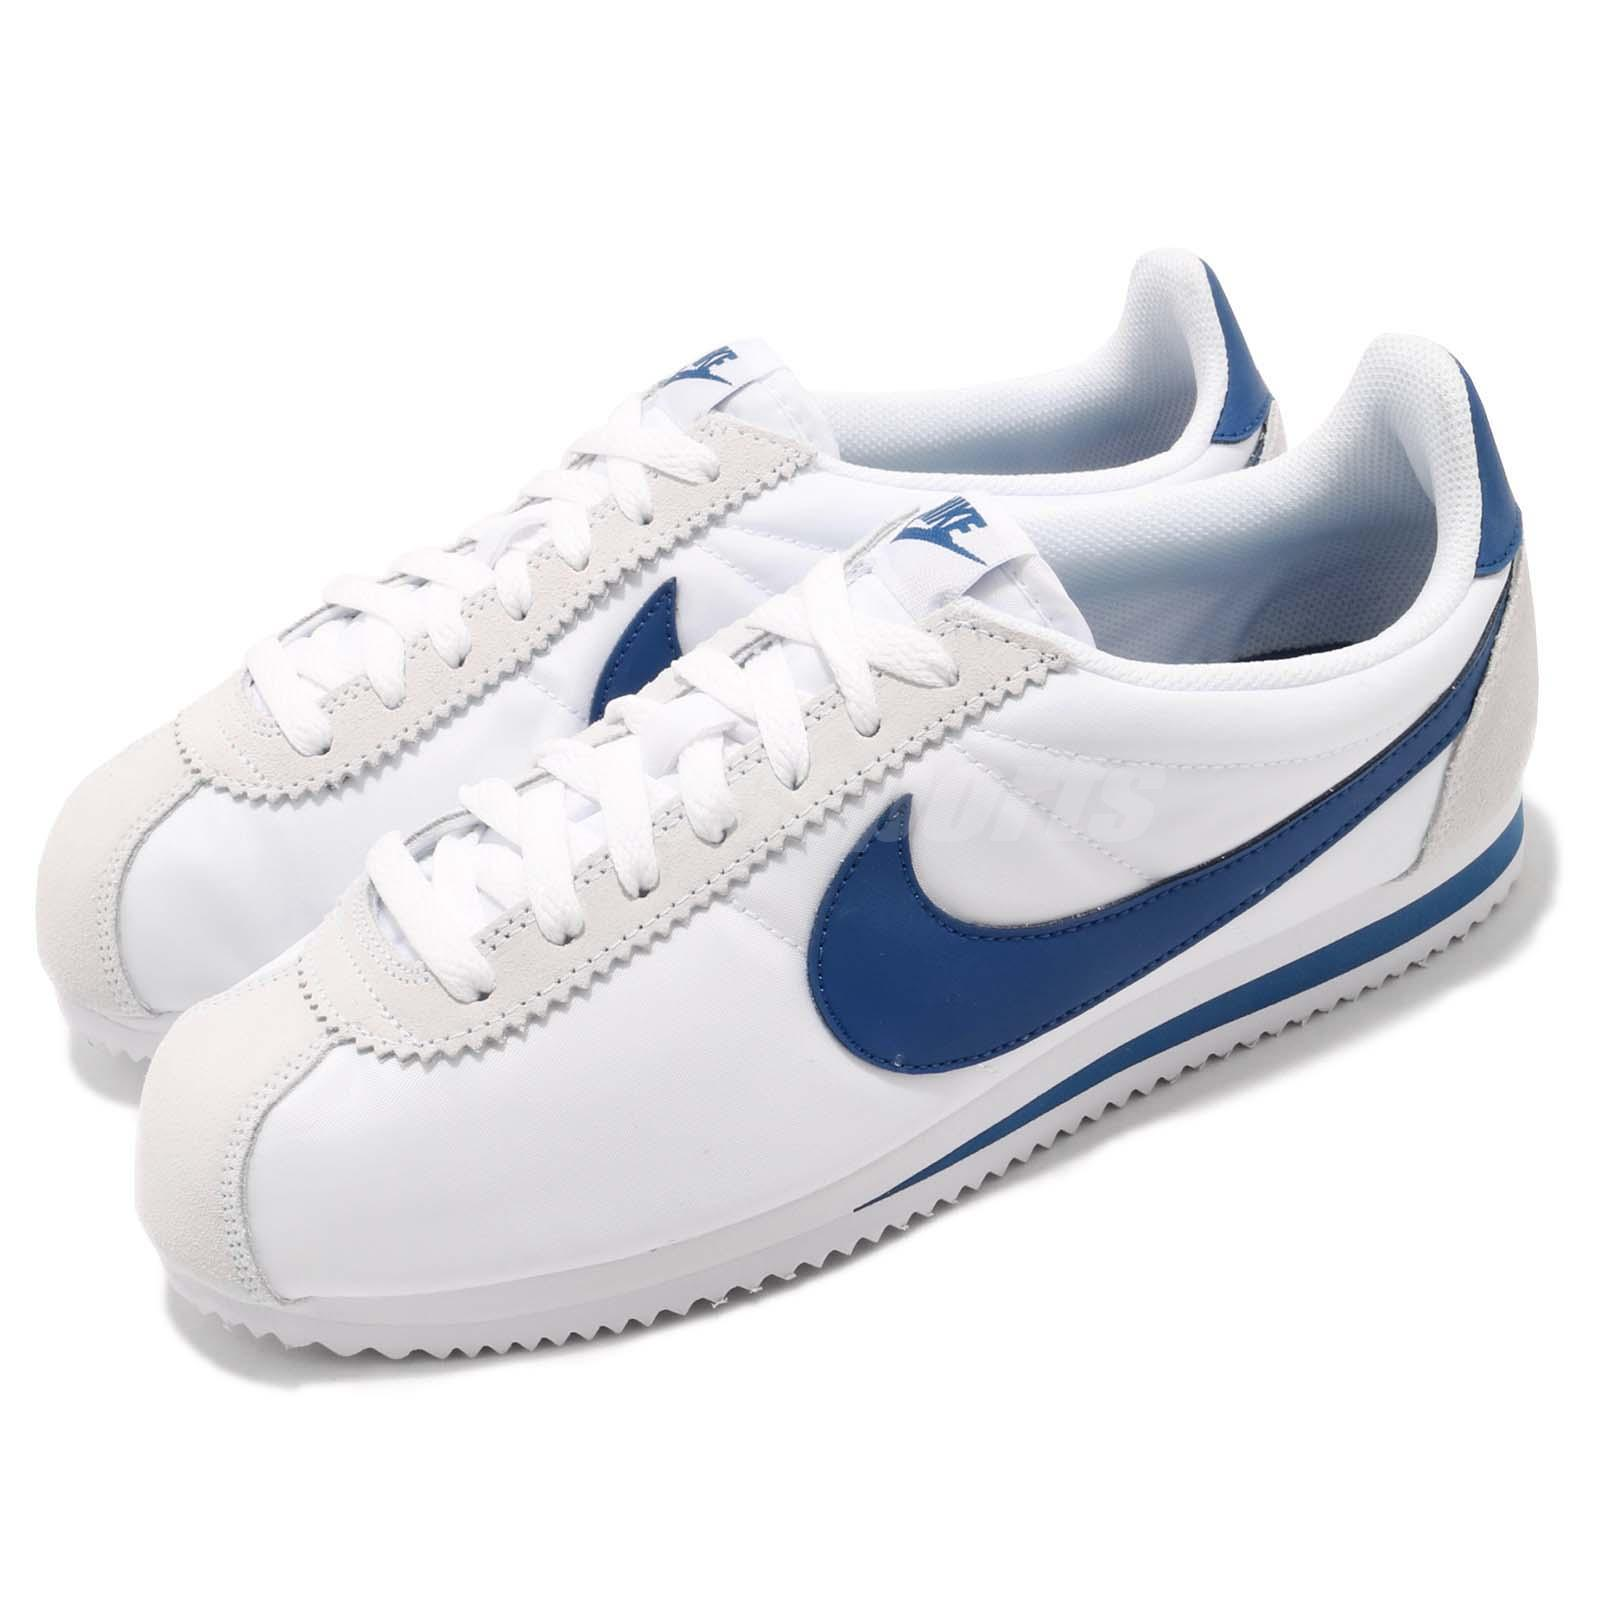 2ac9cffc4a49d Details about Nike Classic Cortez Nylon White Gym Blue Men Women Shoes  Sneakers 807472-102